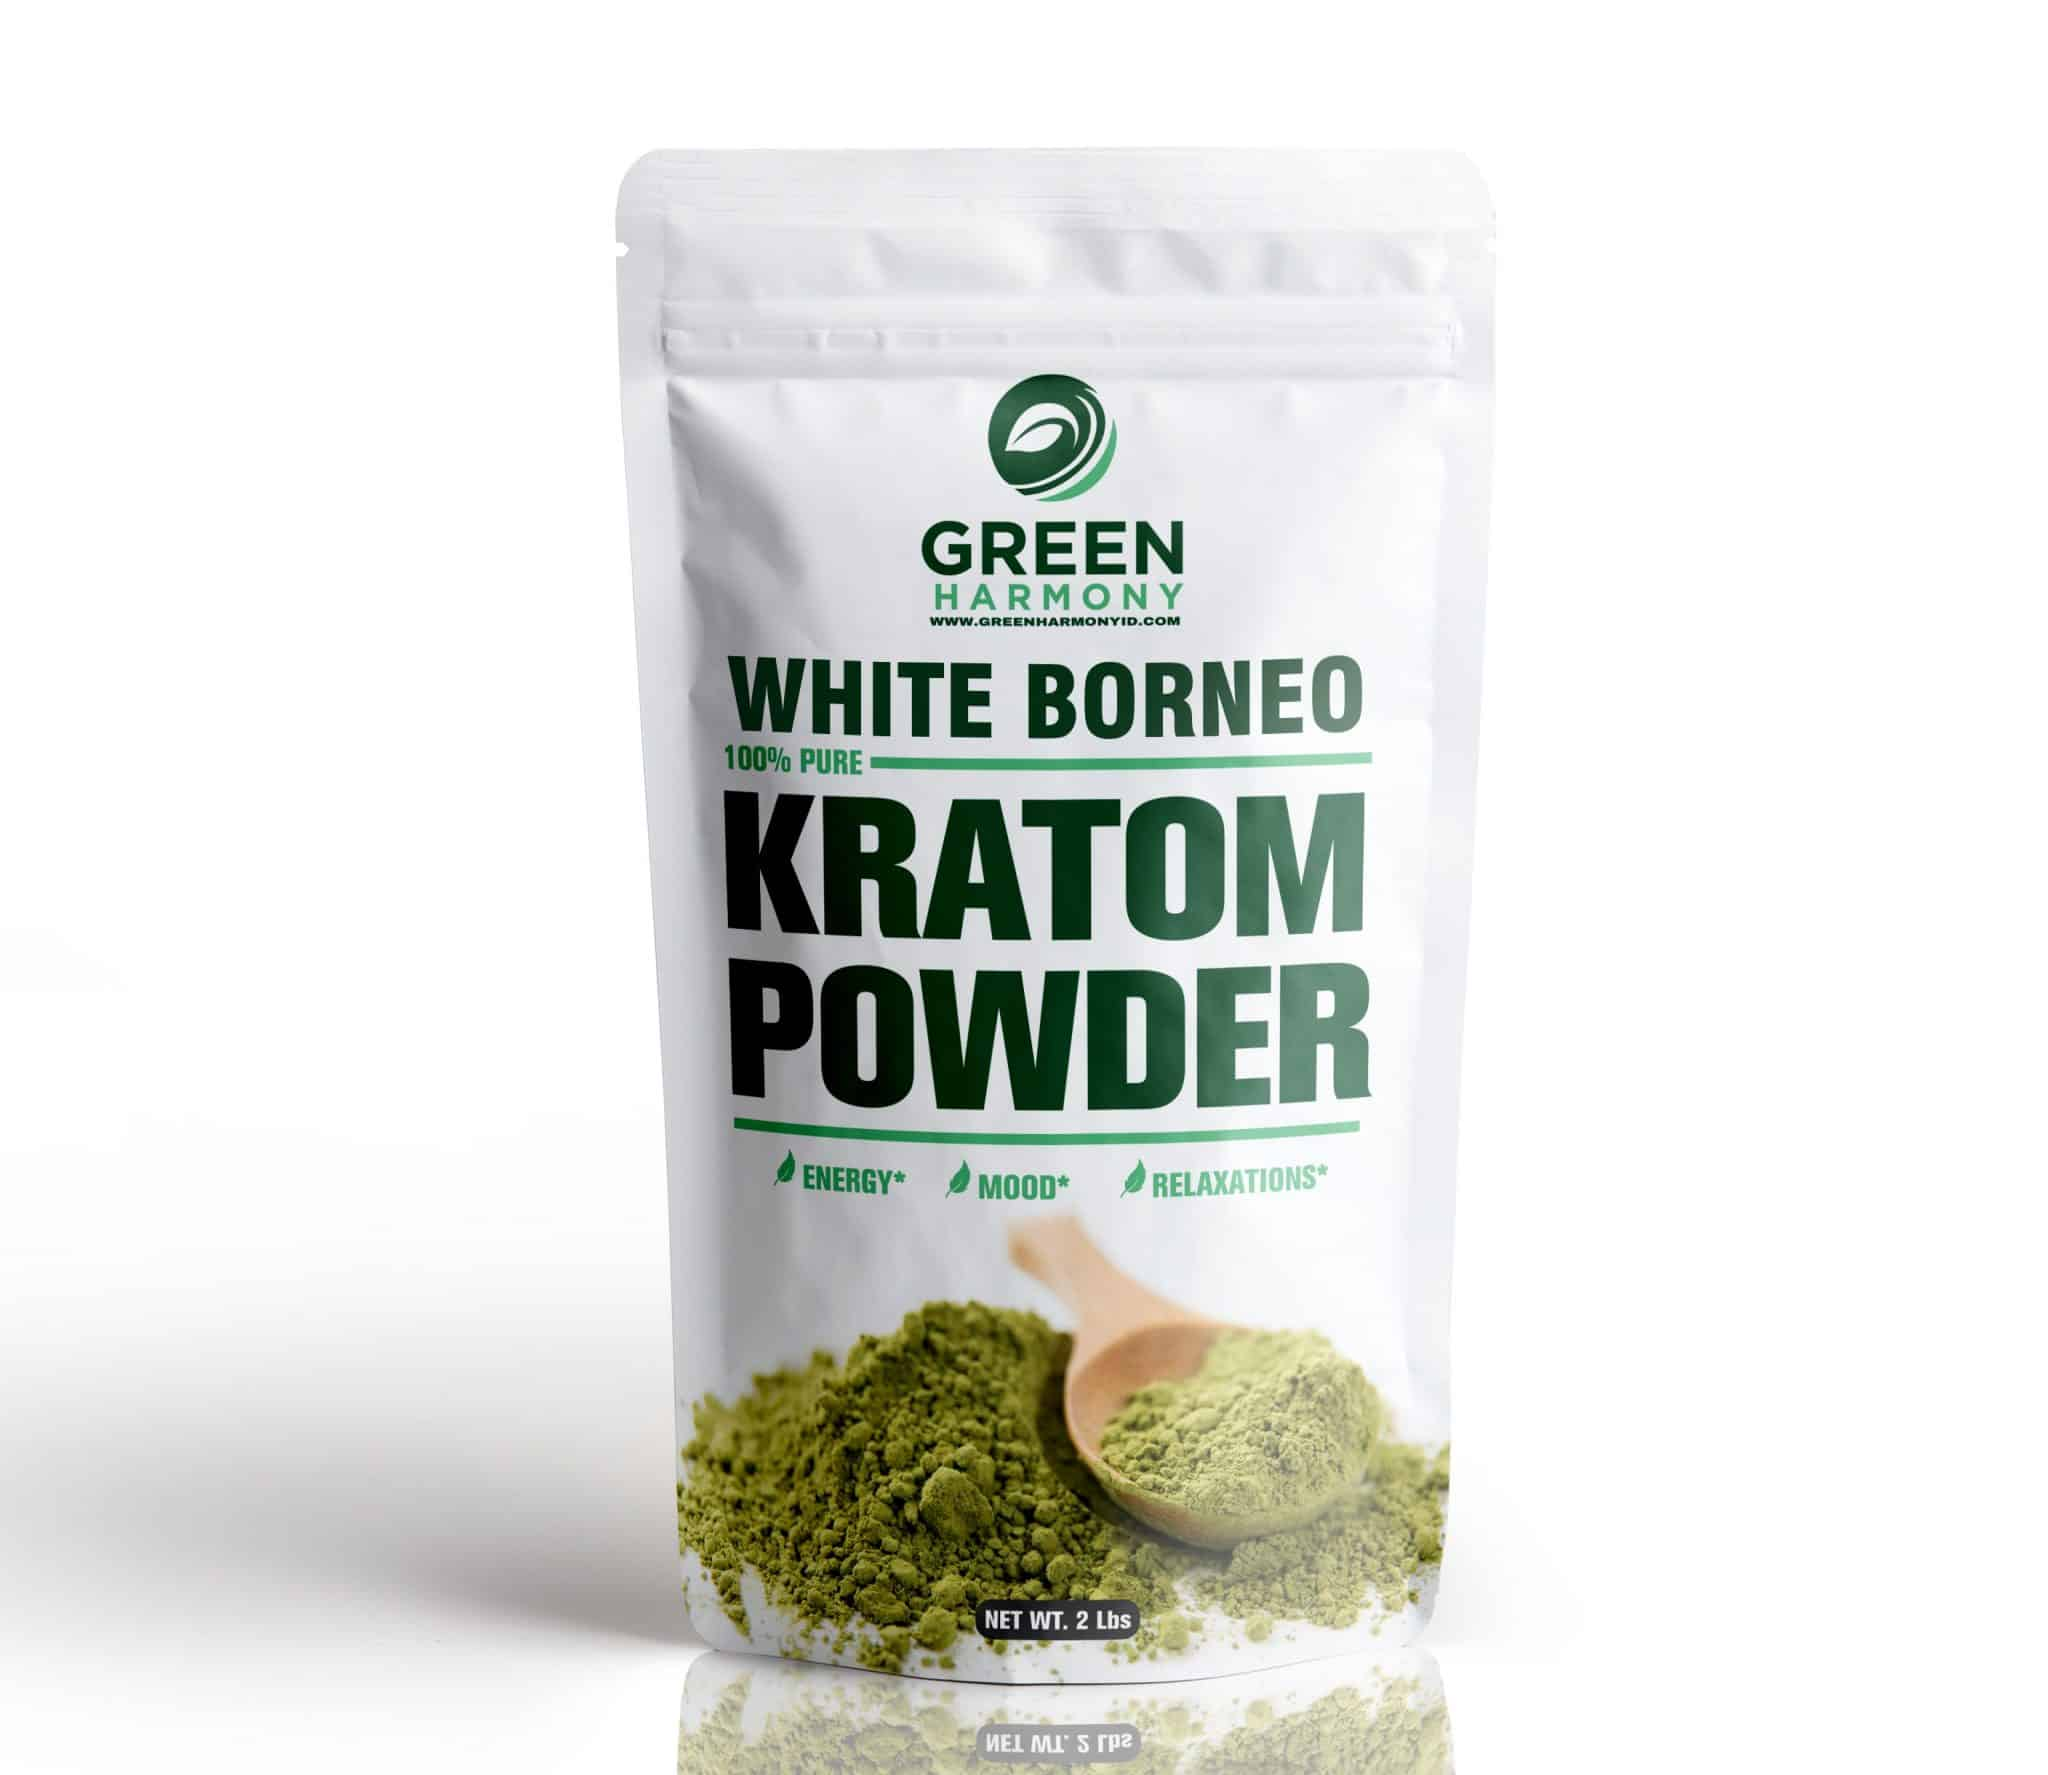 WHITE-BORNEO Best Choice of Kratom Strains for Energy Booster & Dosage